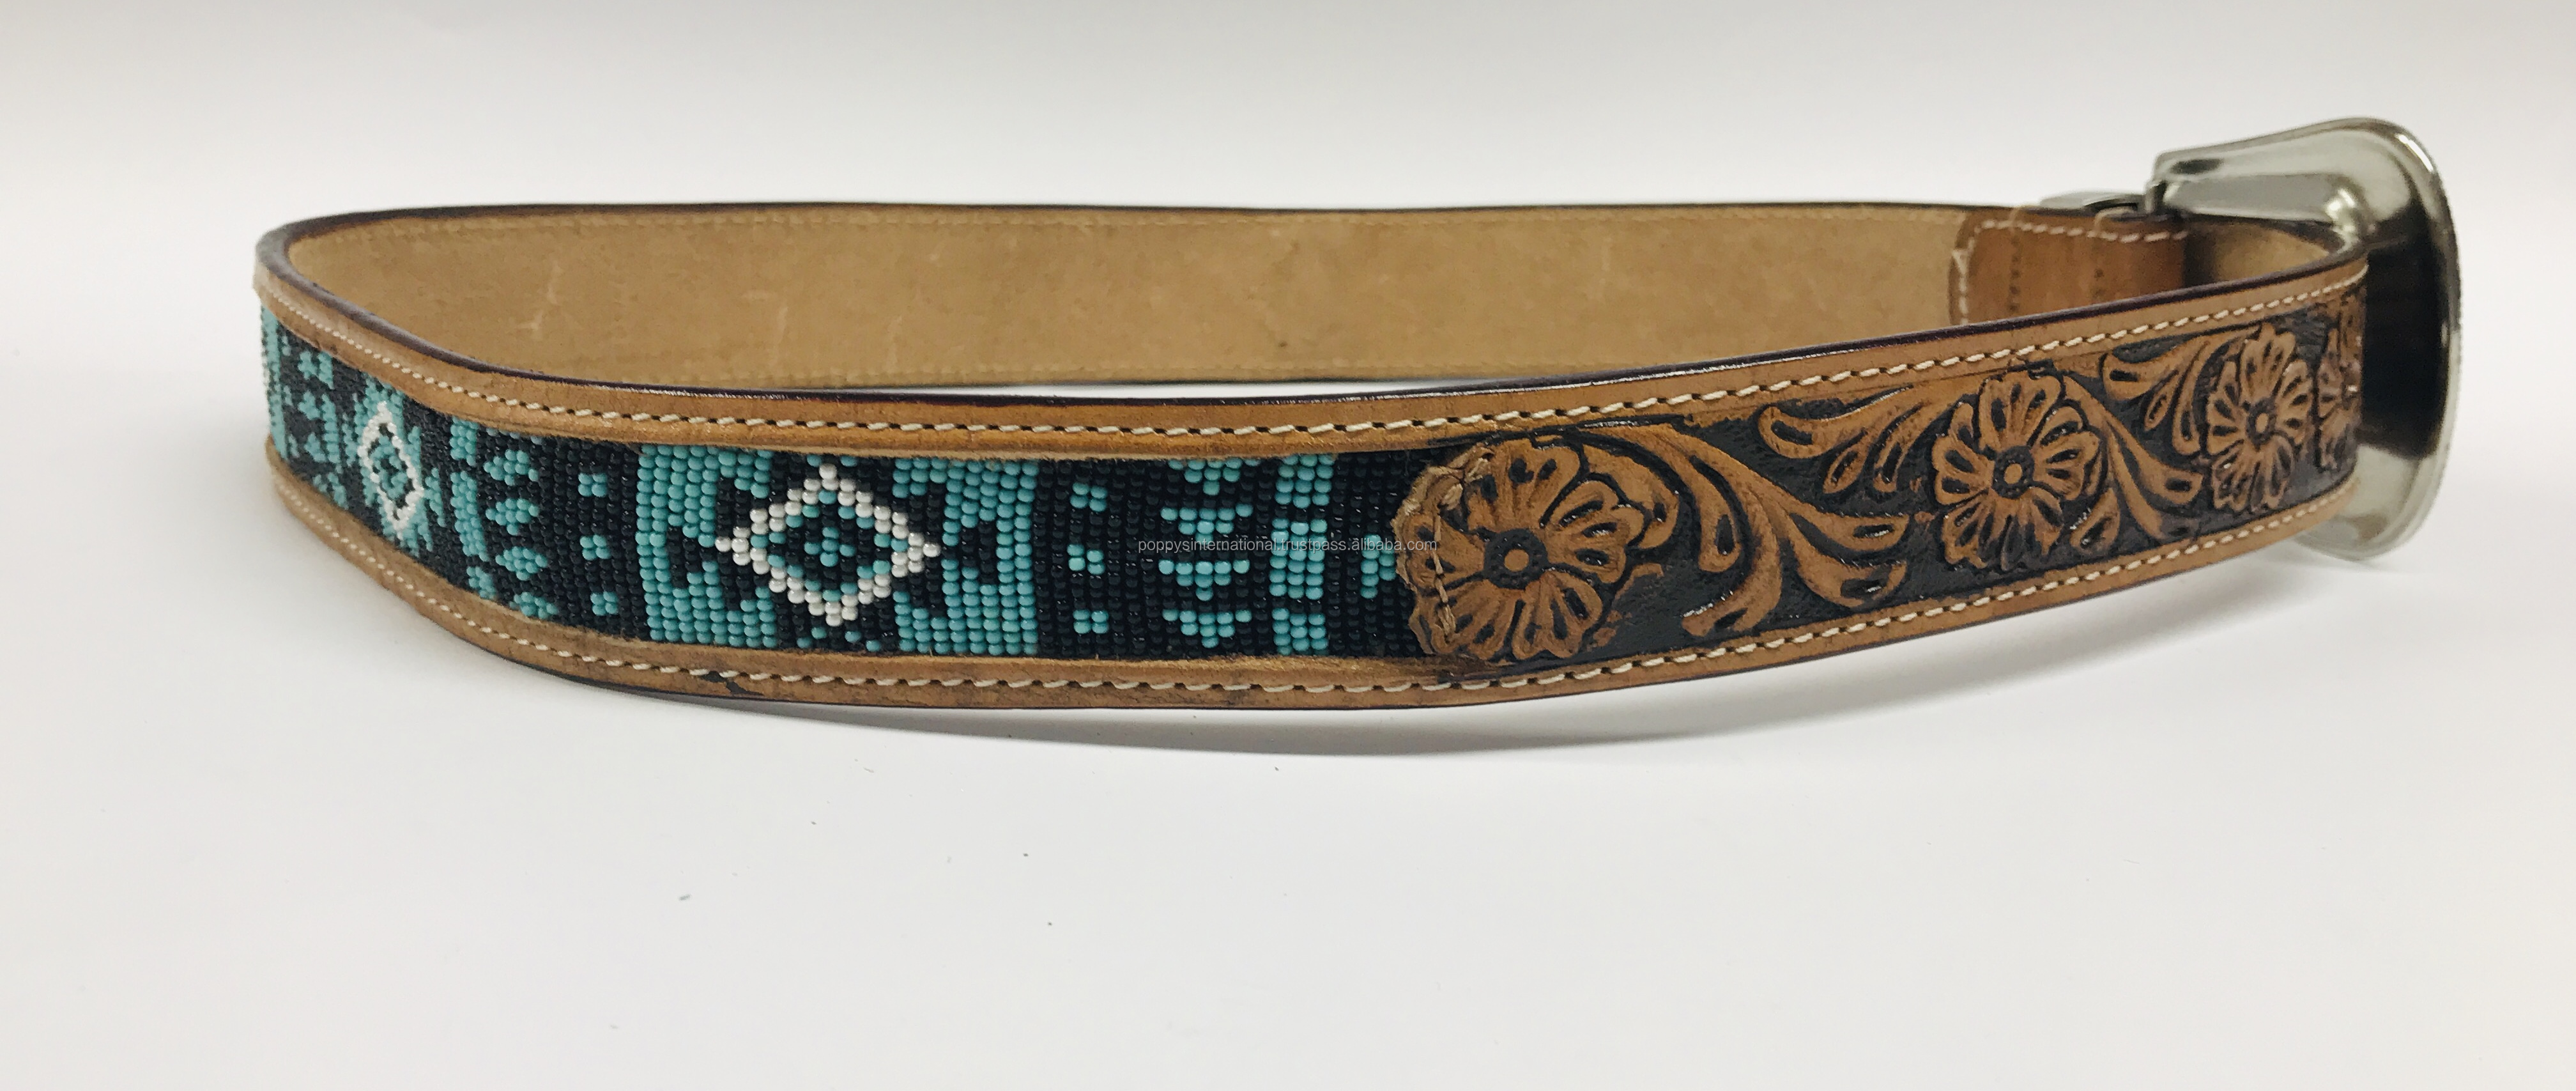 HAND MADE COLOURED BEADED LEATHER BELT WITH HAND CARVED TOOLING